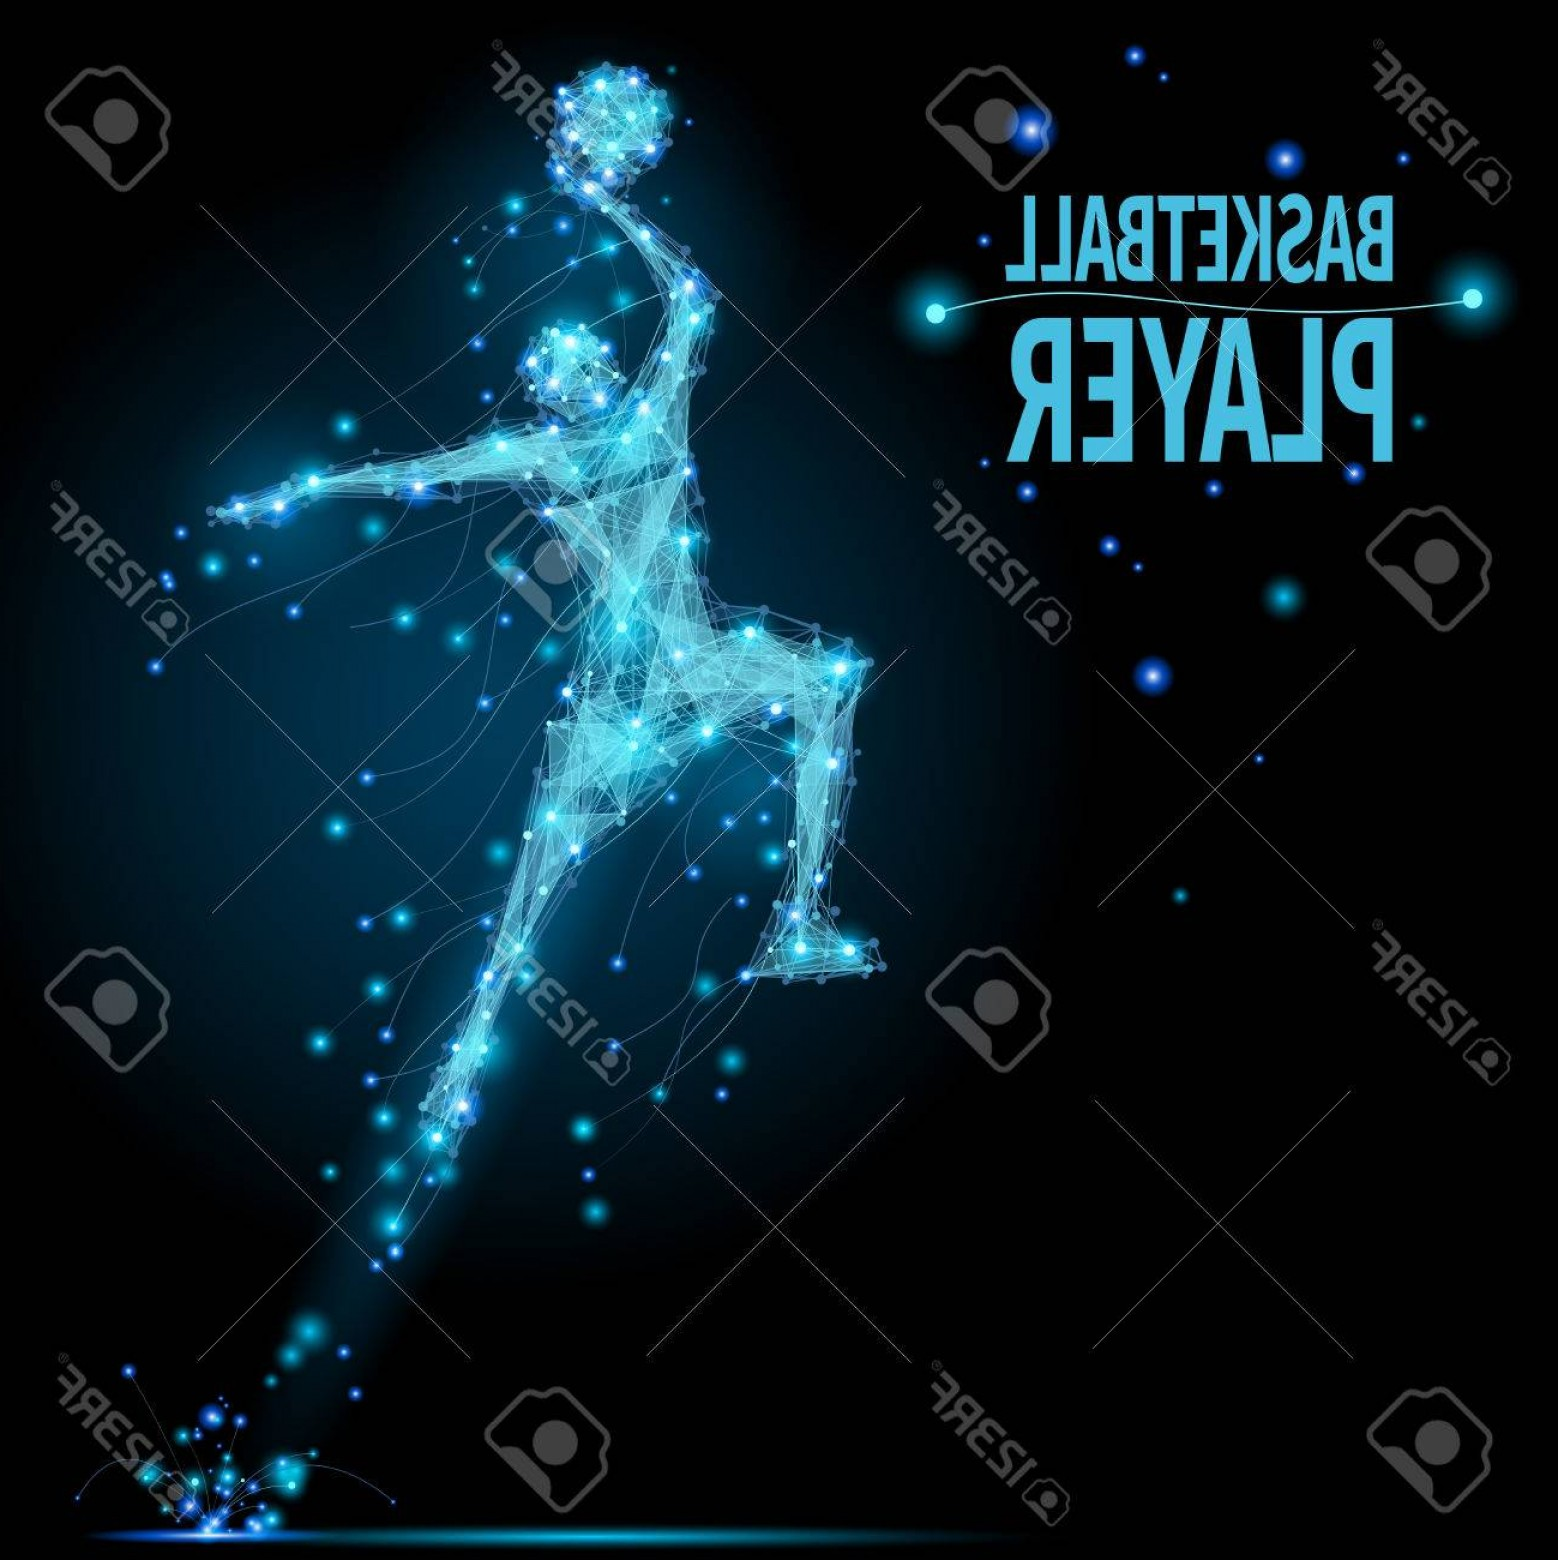 Motion Basketball Vector: Photostock Vector Abstract Basketball Player In Motion With Cybernetic Particles Vector Mesh Spheres From Flying Debri